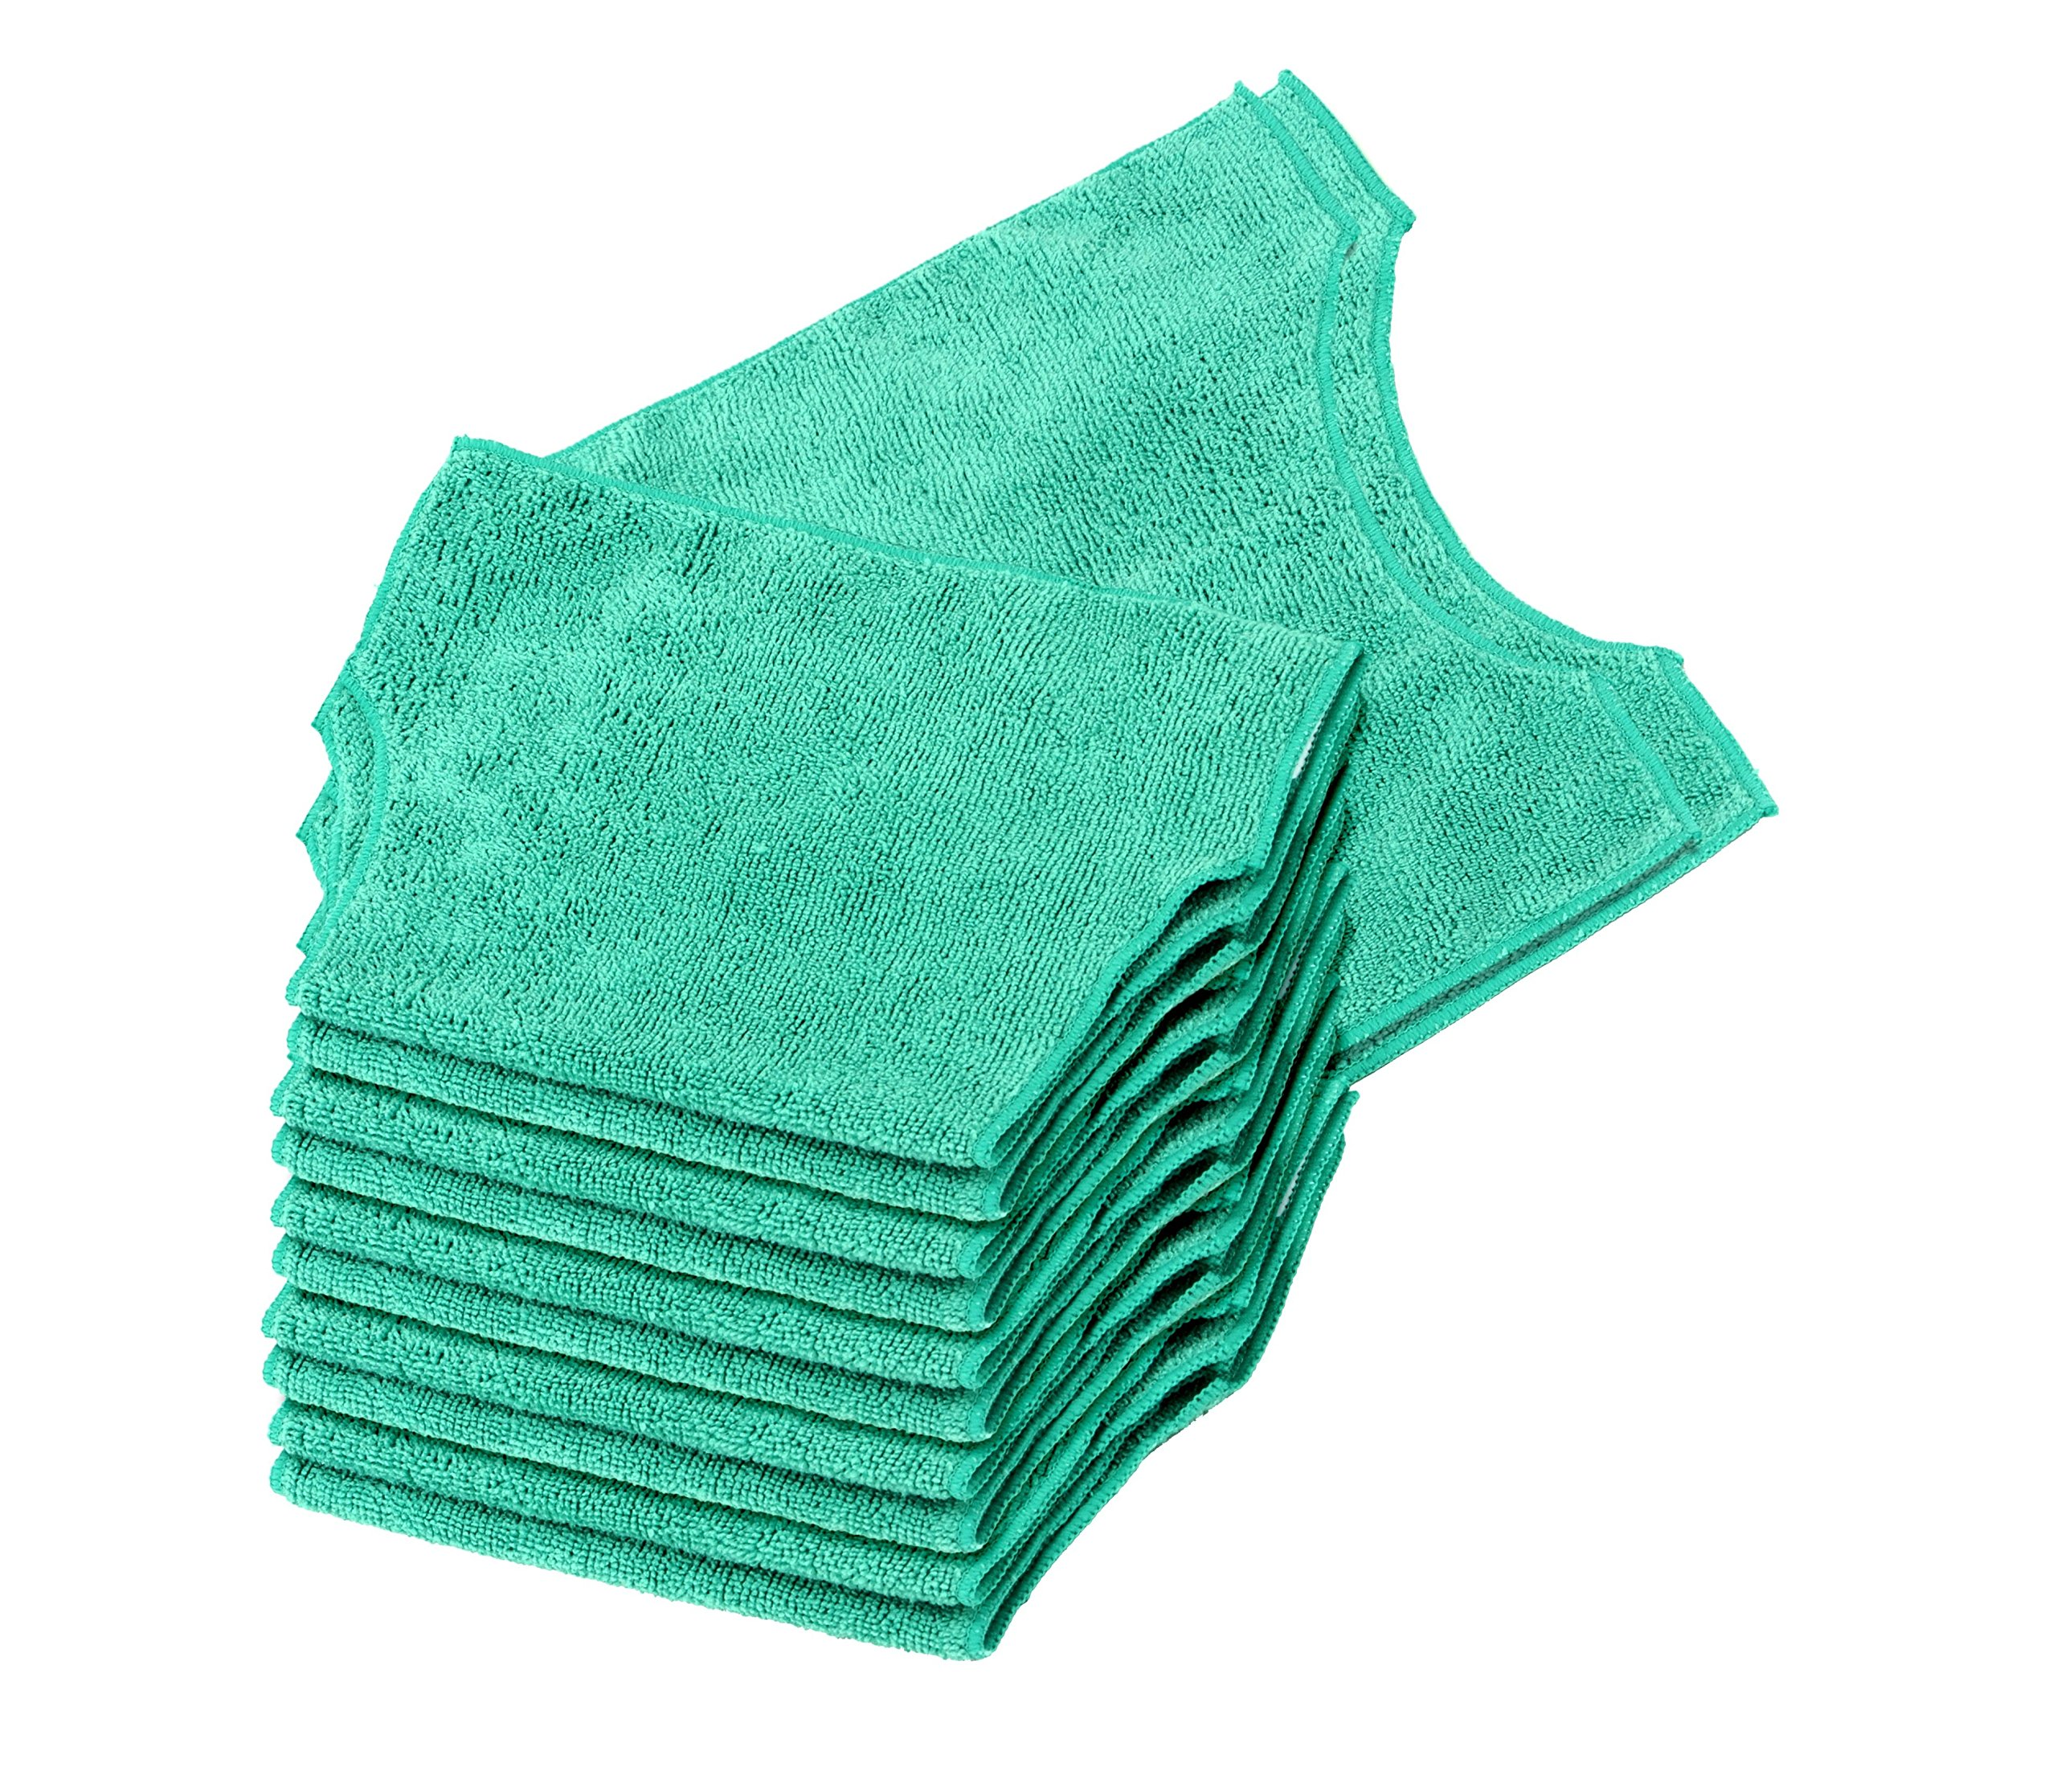 Real Clean Microfiber Refills Compatible with Swiffer and Clorox ReadyMop 12-Pack Green